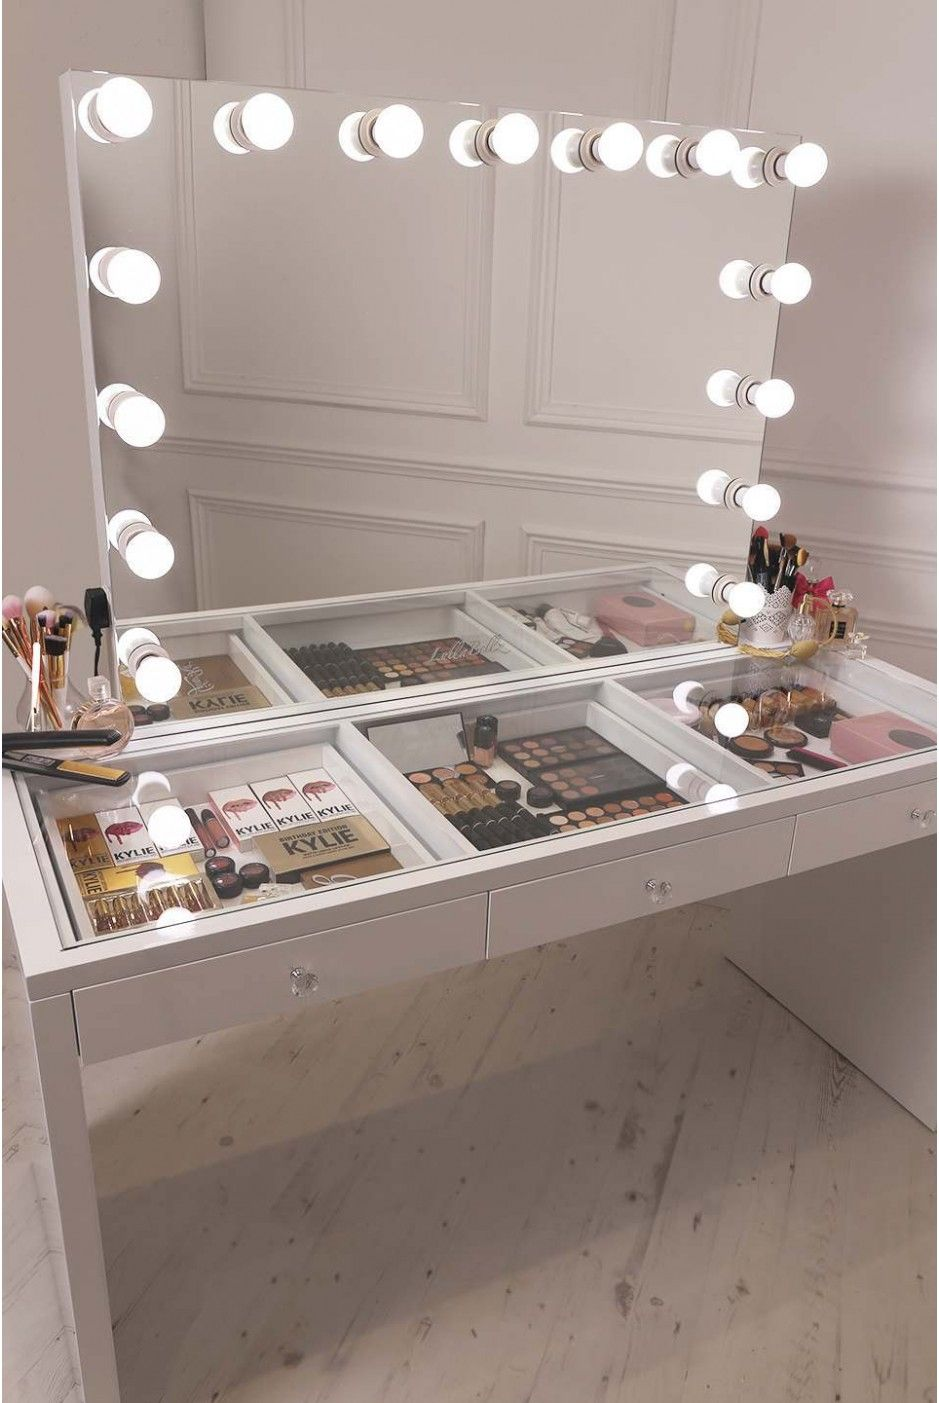 Diy Vanity Mirror With Lights For Bathroom And Makeup Station Diy